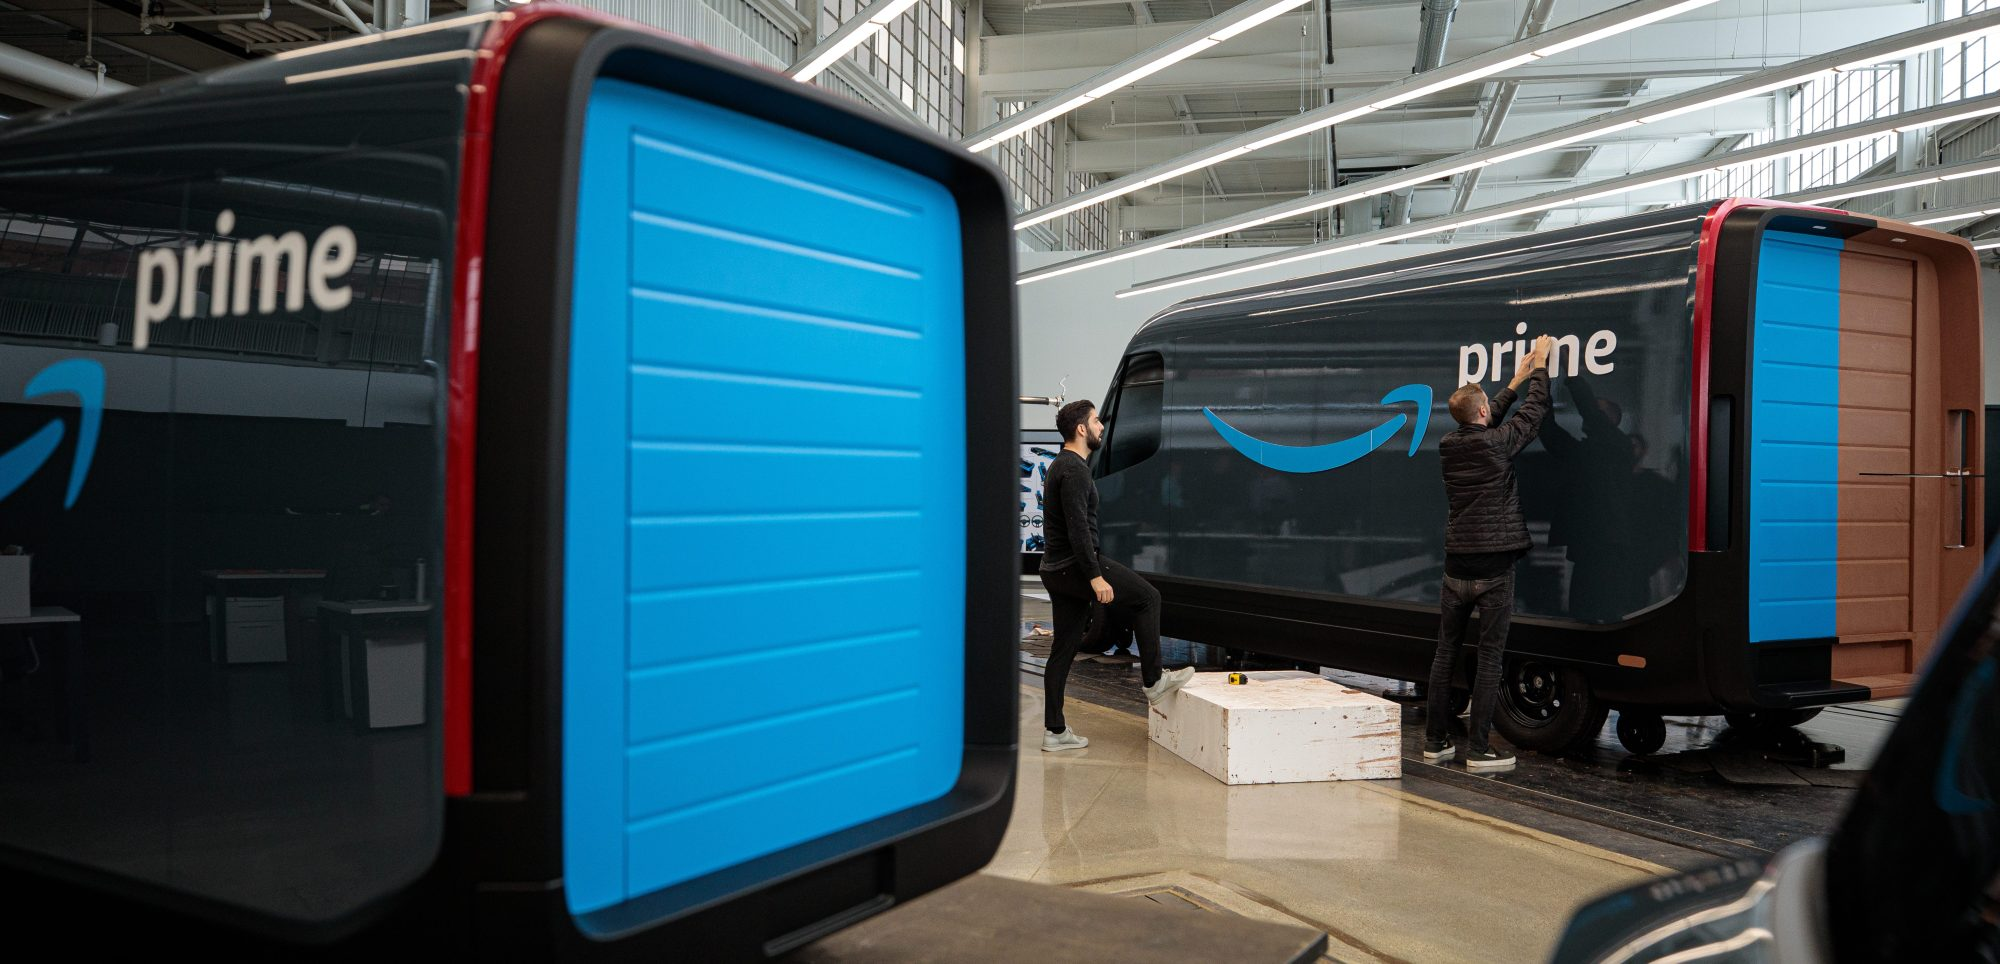 Amazon owns a stake in Rivian and has committed to deploying 100,000 electric delivery vans in their fleet.